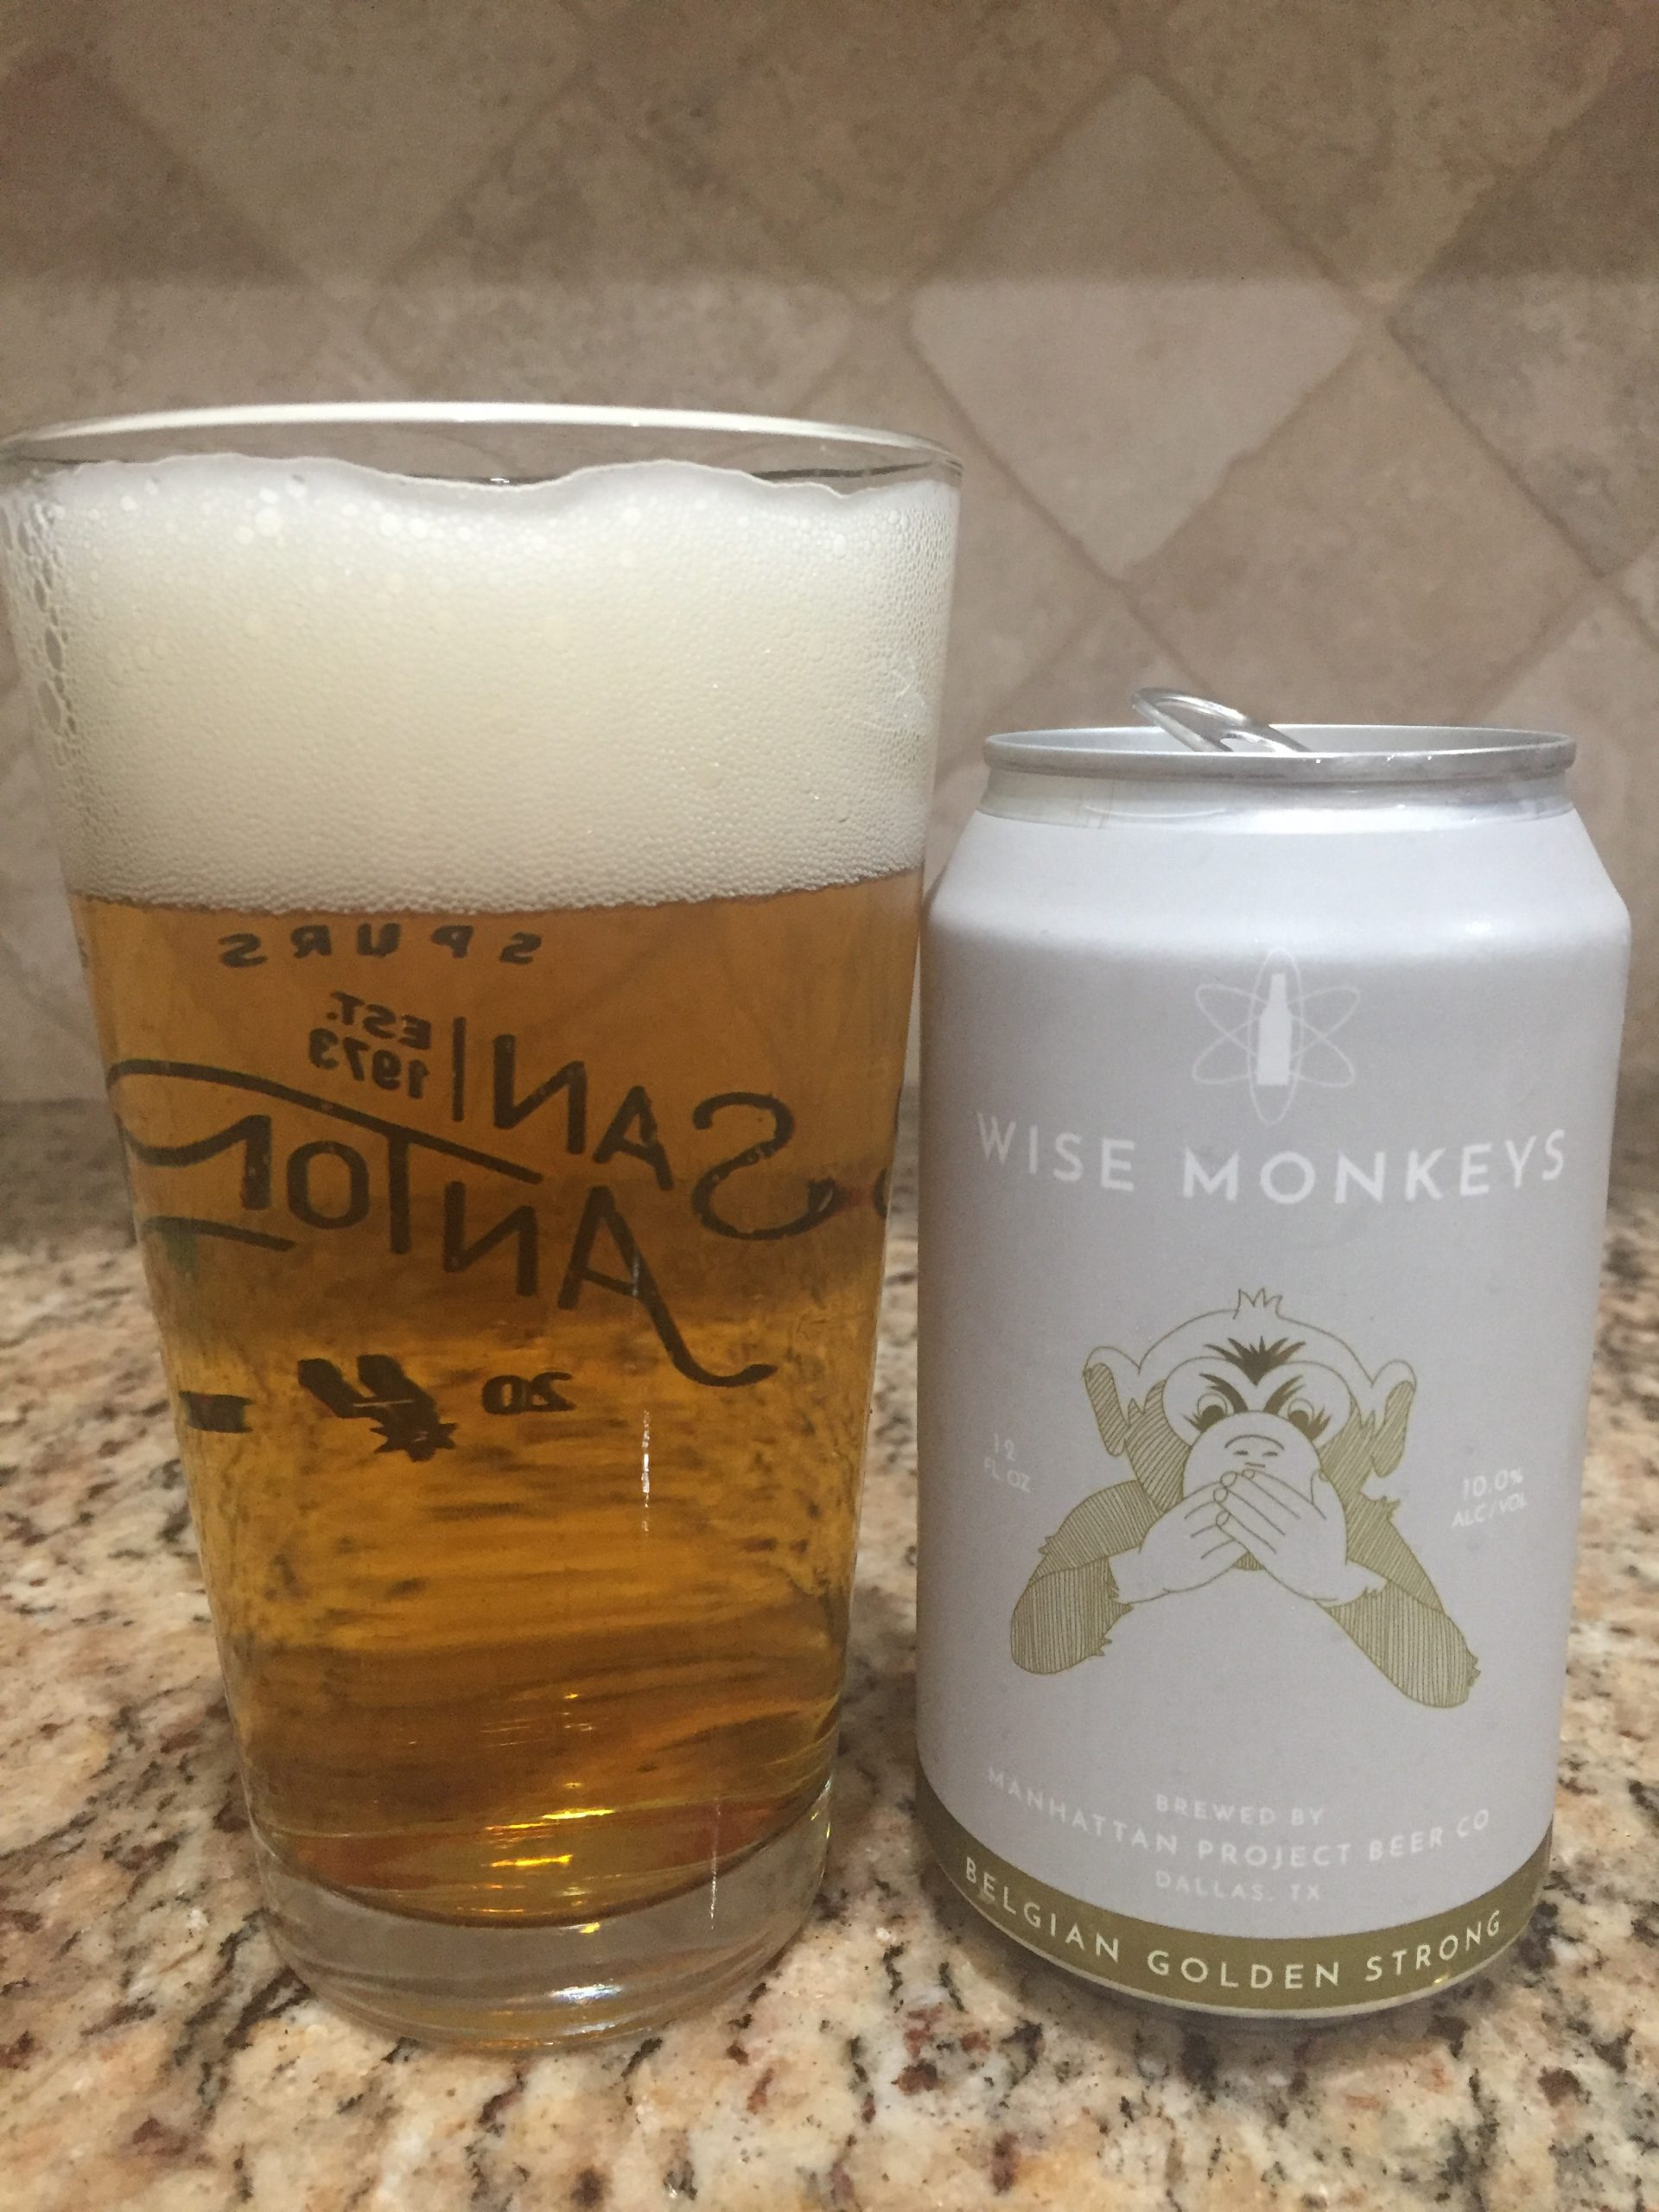 A can of Wise Monkeys from Manhattan Project Beer company is next to a pint glass filled with a clear golden beer with a thick white head.